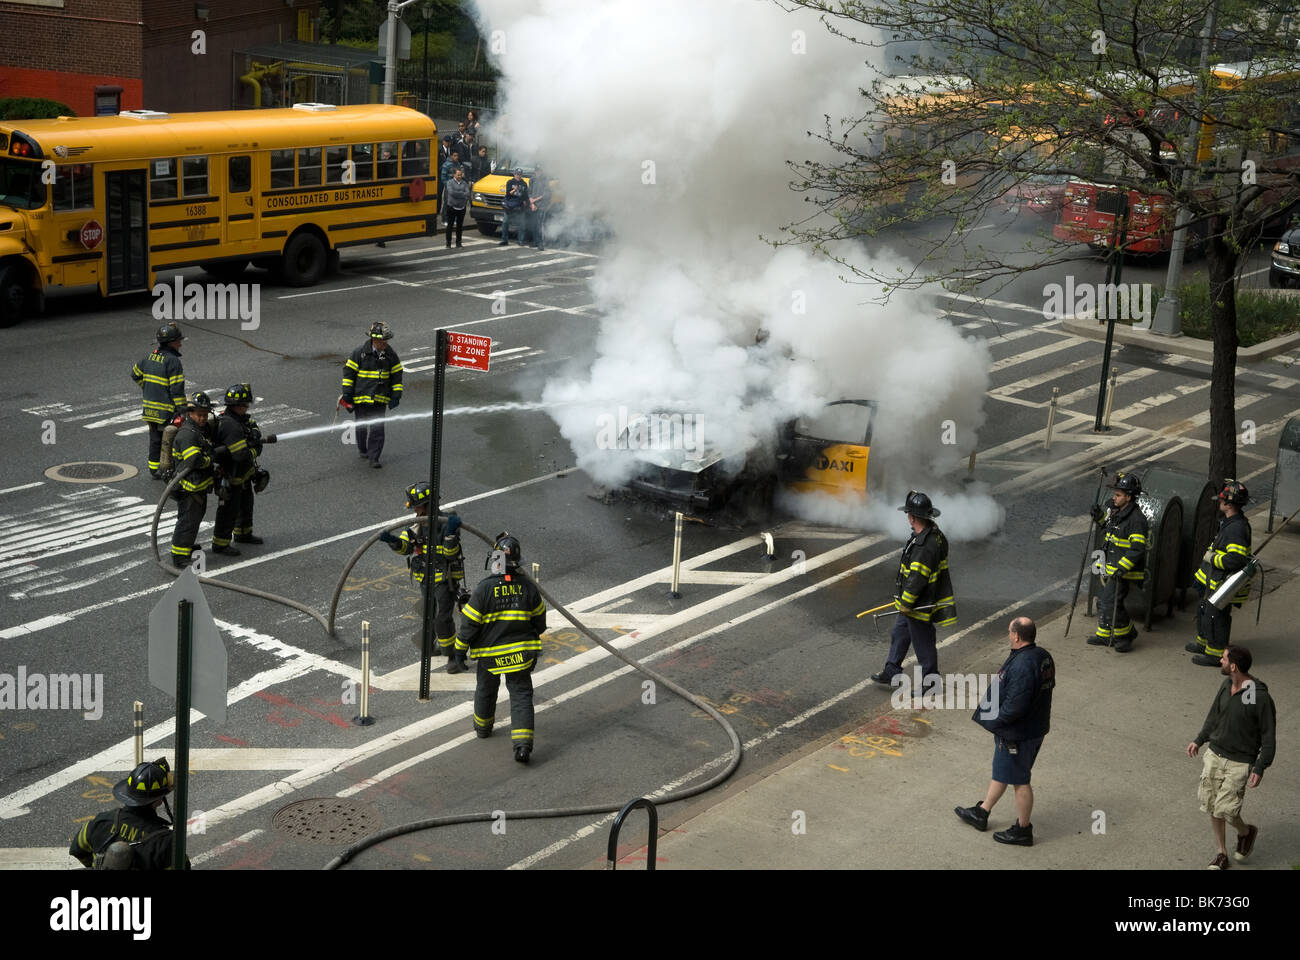 Members of the FDNY extinguish a taxicab that has caught fire on Ninth Avenue in the New York neighborhood of Chelsea Stock Photo